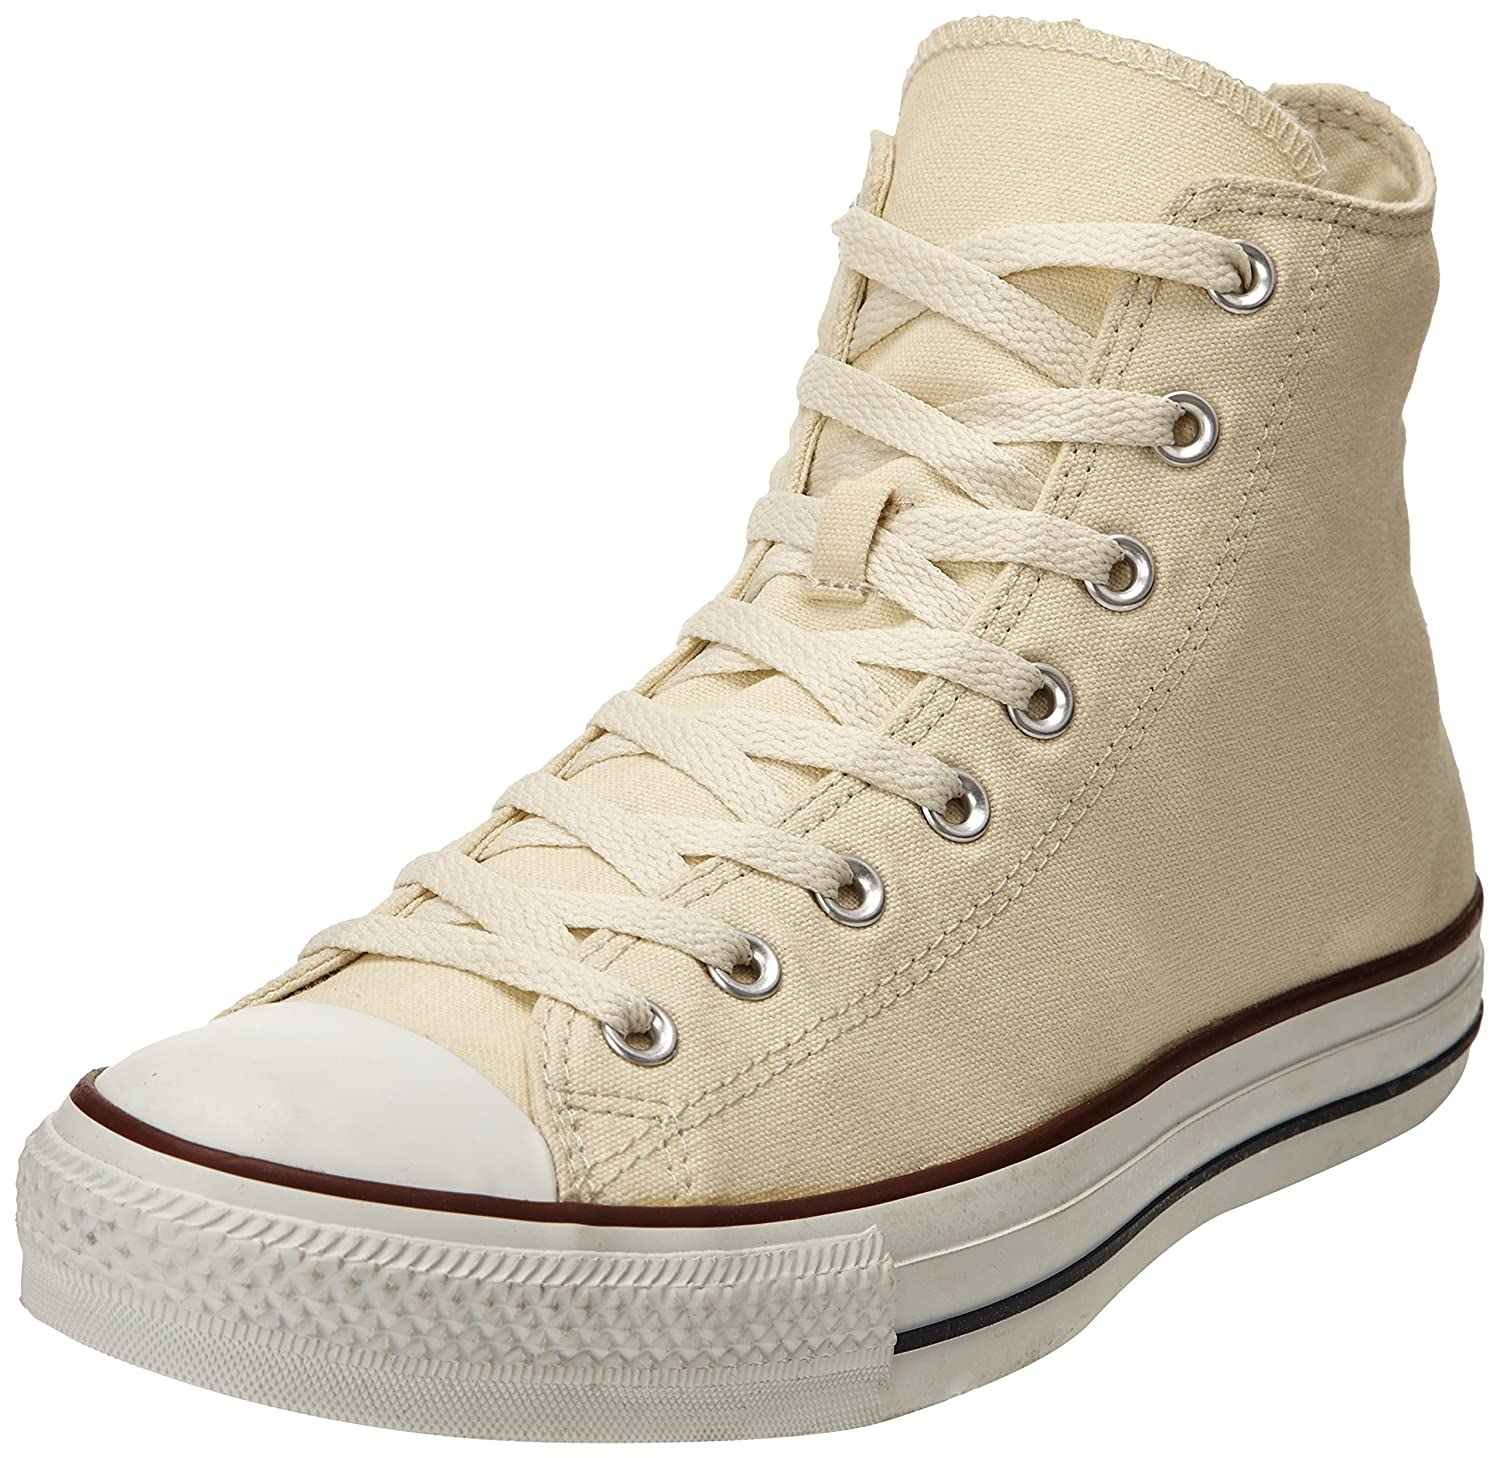 Converse Ctas Core Hi, Baskets mixte adulte Core mode mixte adulte Beige (Beige) 5e46508 - automatisms.space